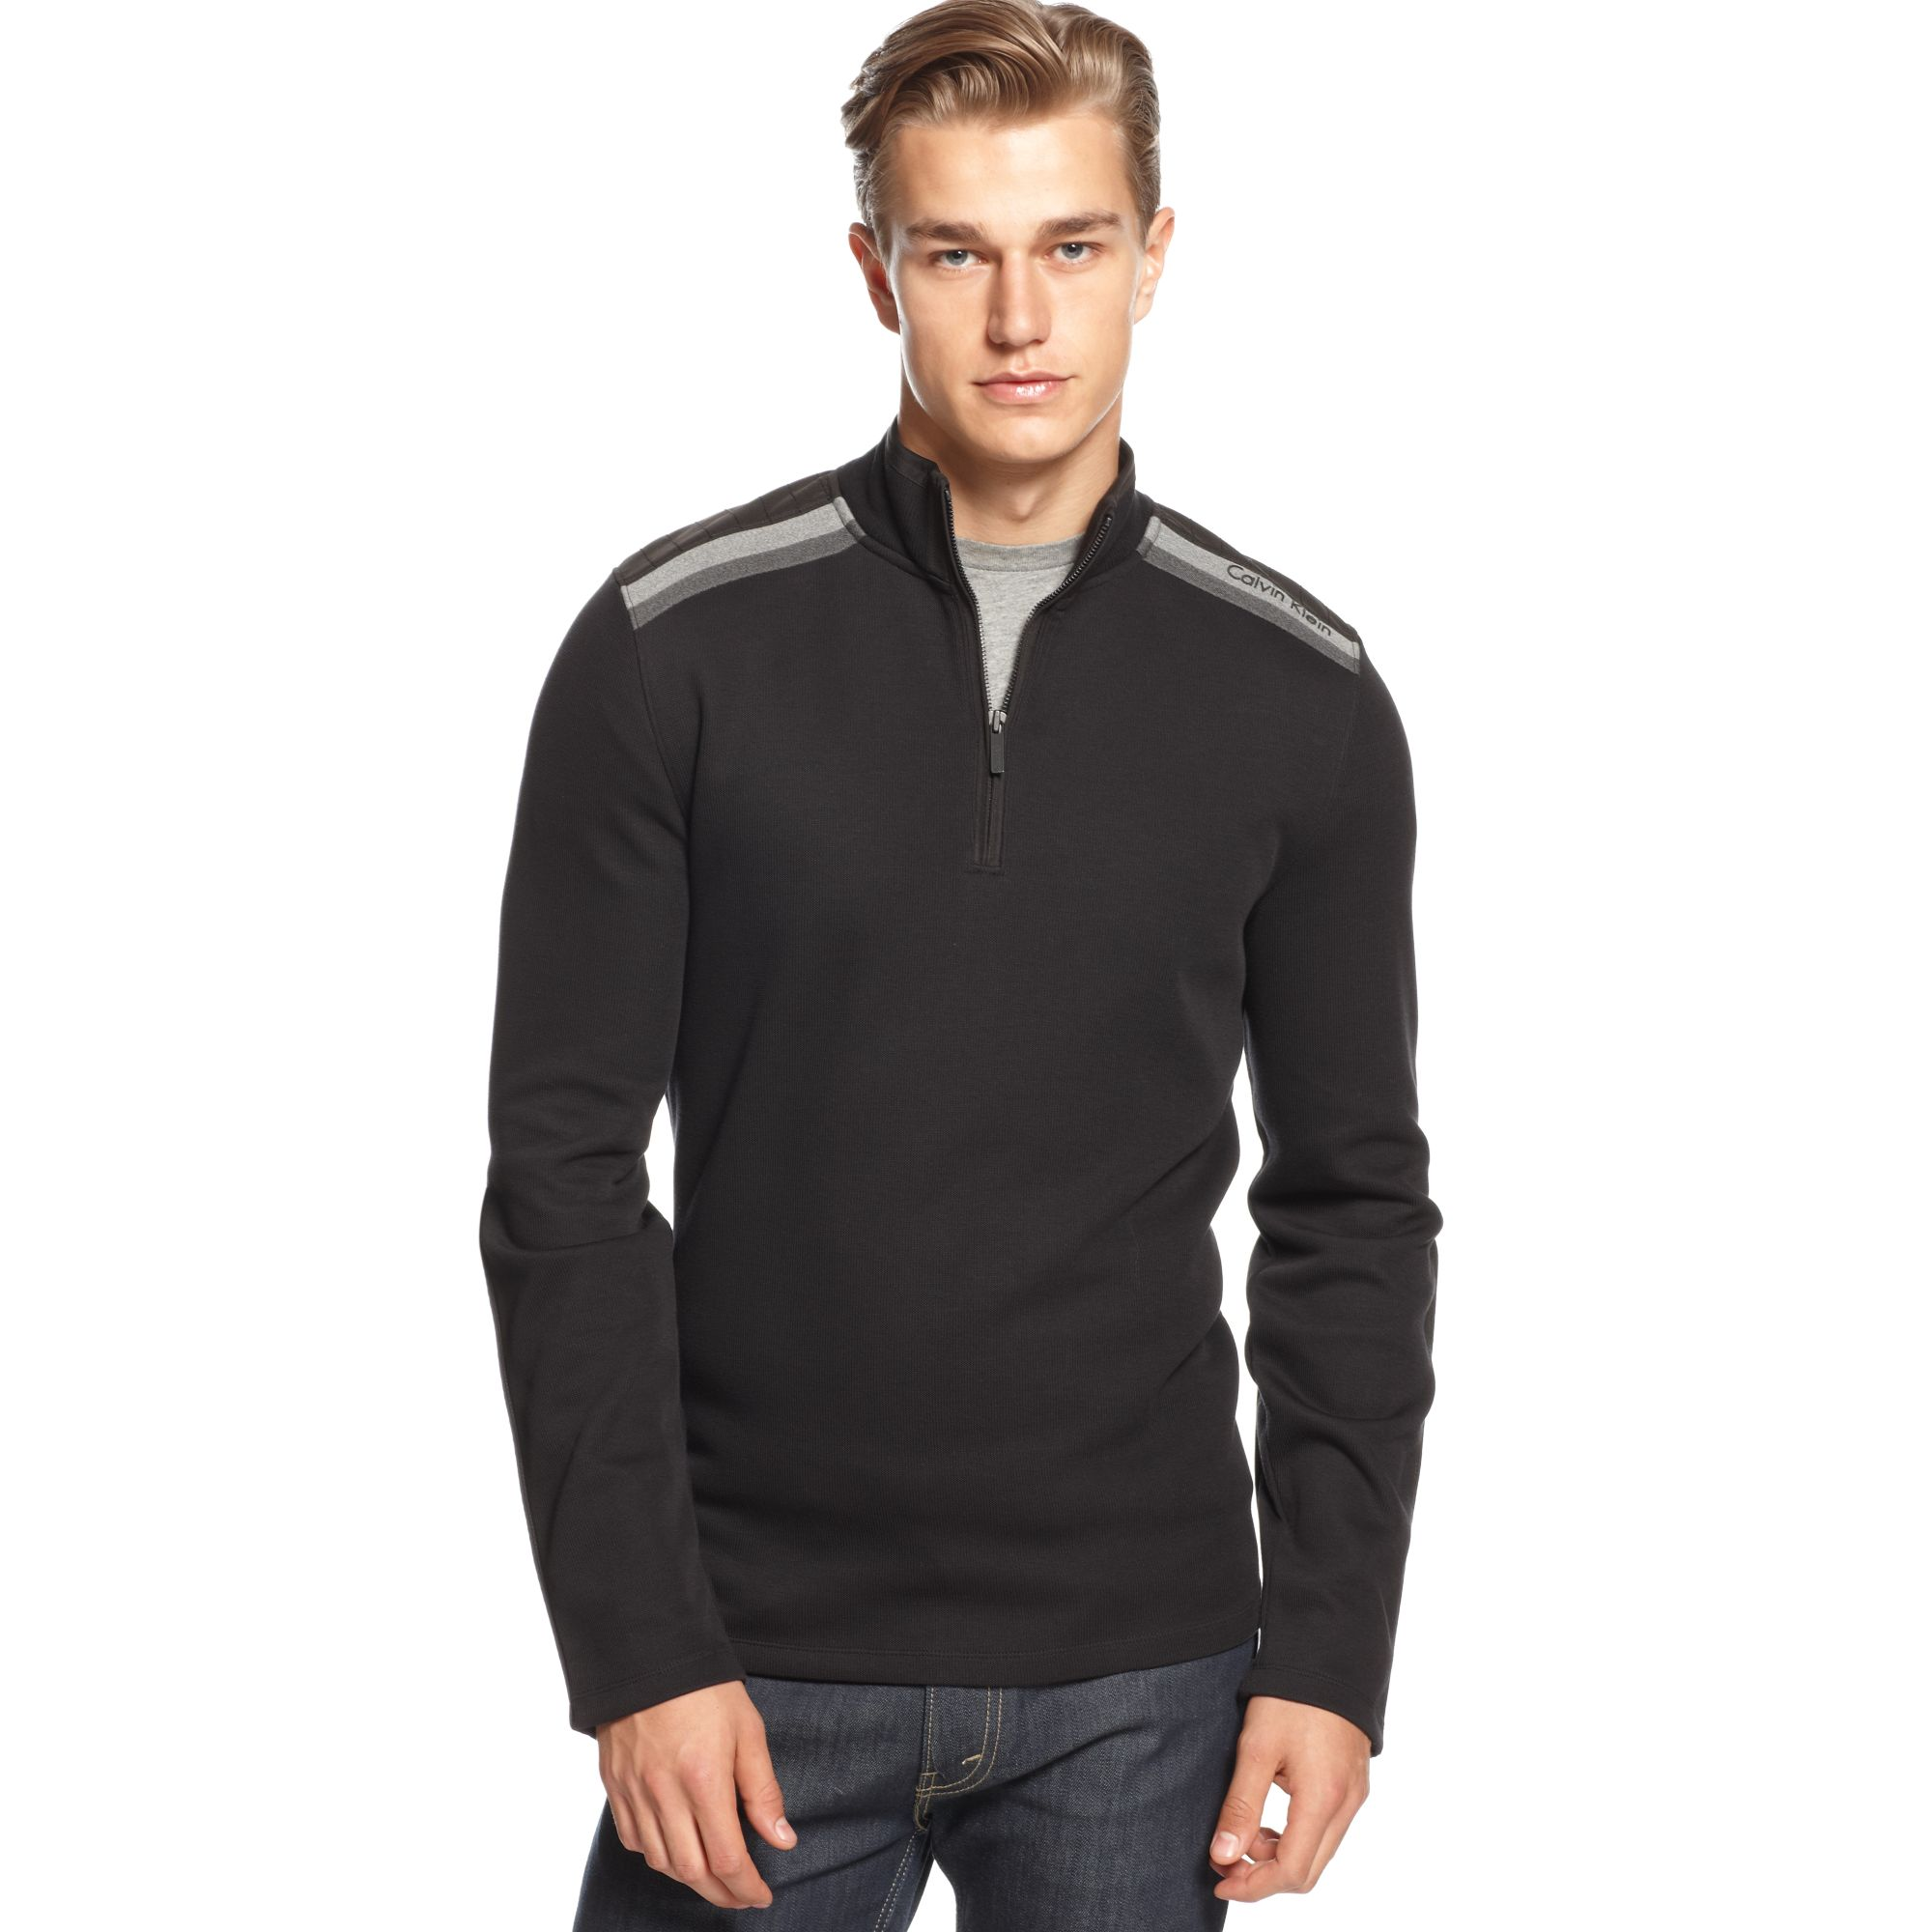 calvin klein mixed media french rib quarter zipper sweater in black for men lyst. Black Bedroom Furniture Sets. Home Design Ideas